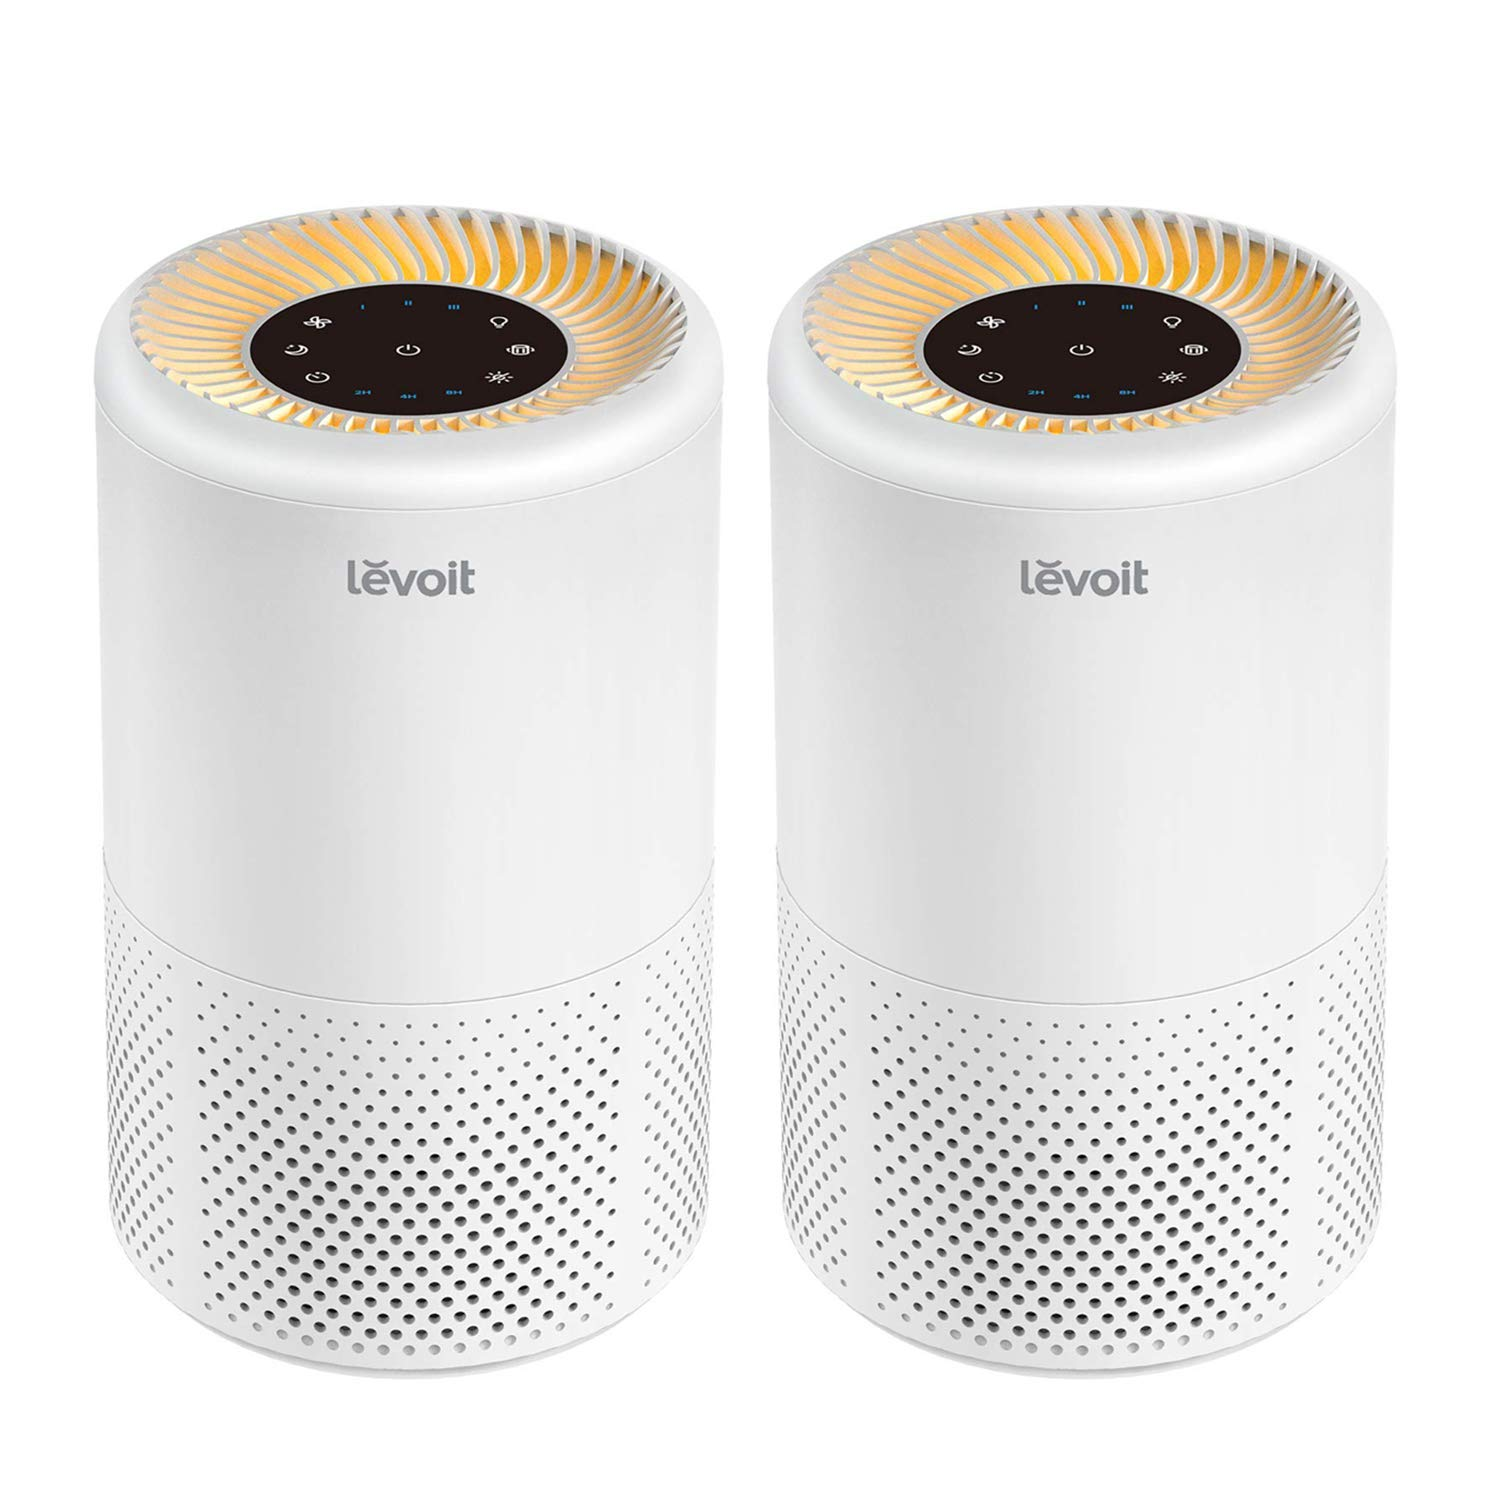 LEVOIT Air Purifier for Home Smokers Allergies and Pets Hair, True HEPA Filter, Quiet in Bedroom,Filtration System Cleaner Eliminators, 99.97 Odor Smoke Dust Mold, Night Light Timer, Vista 200, 2PACK